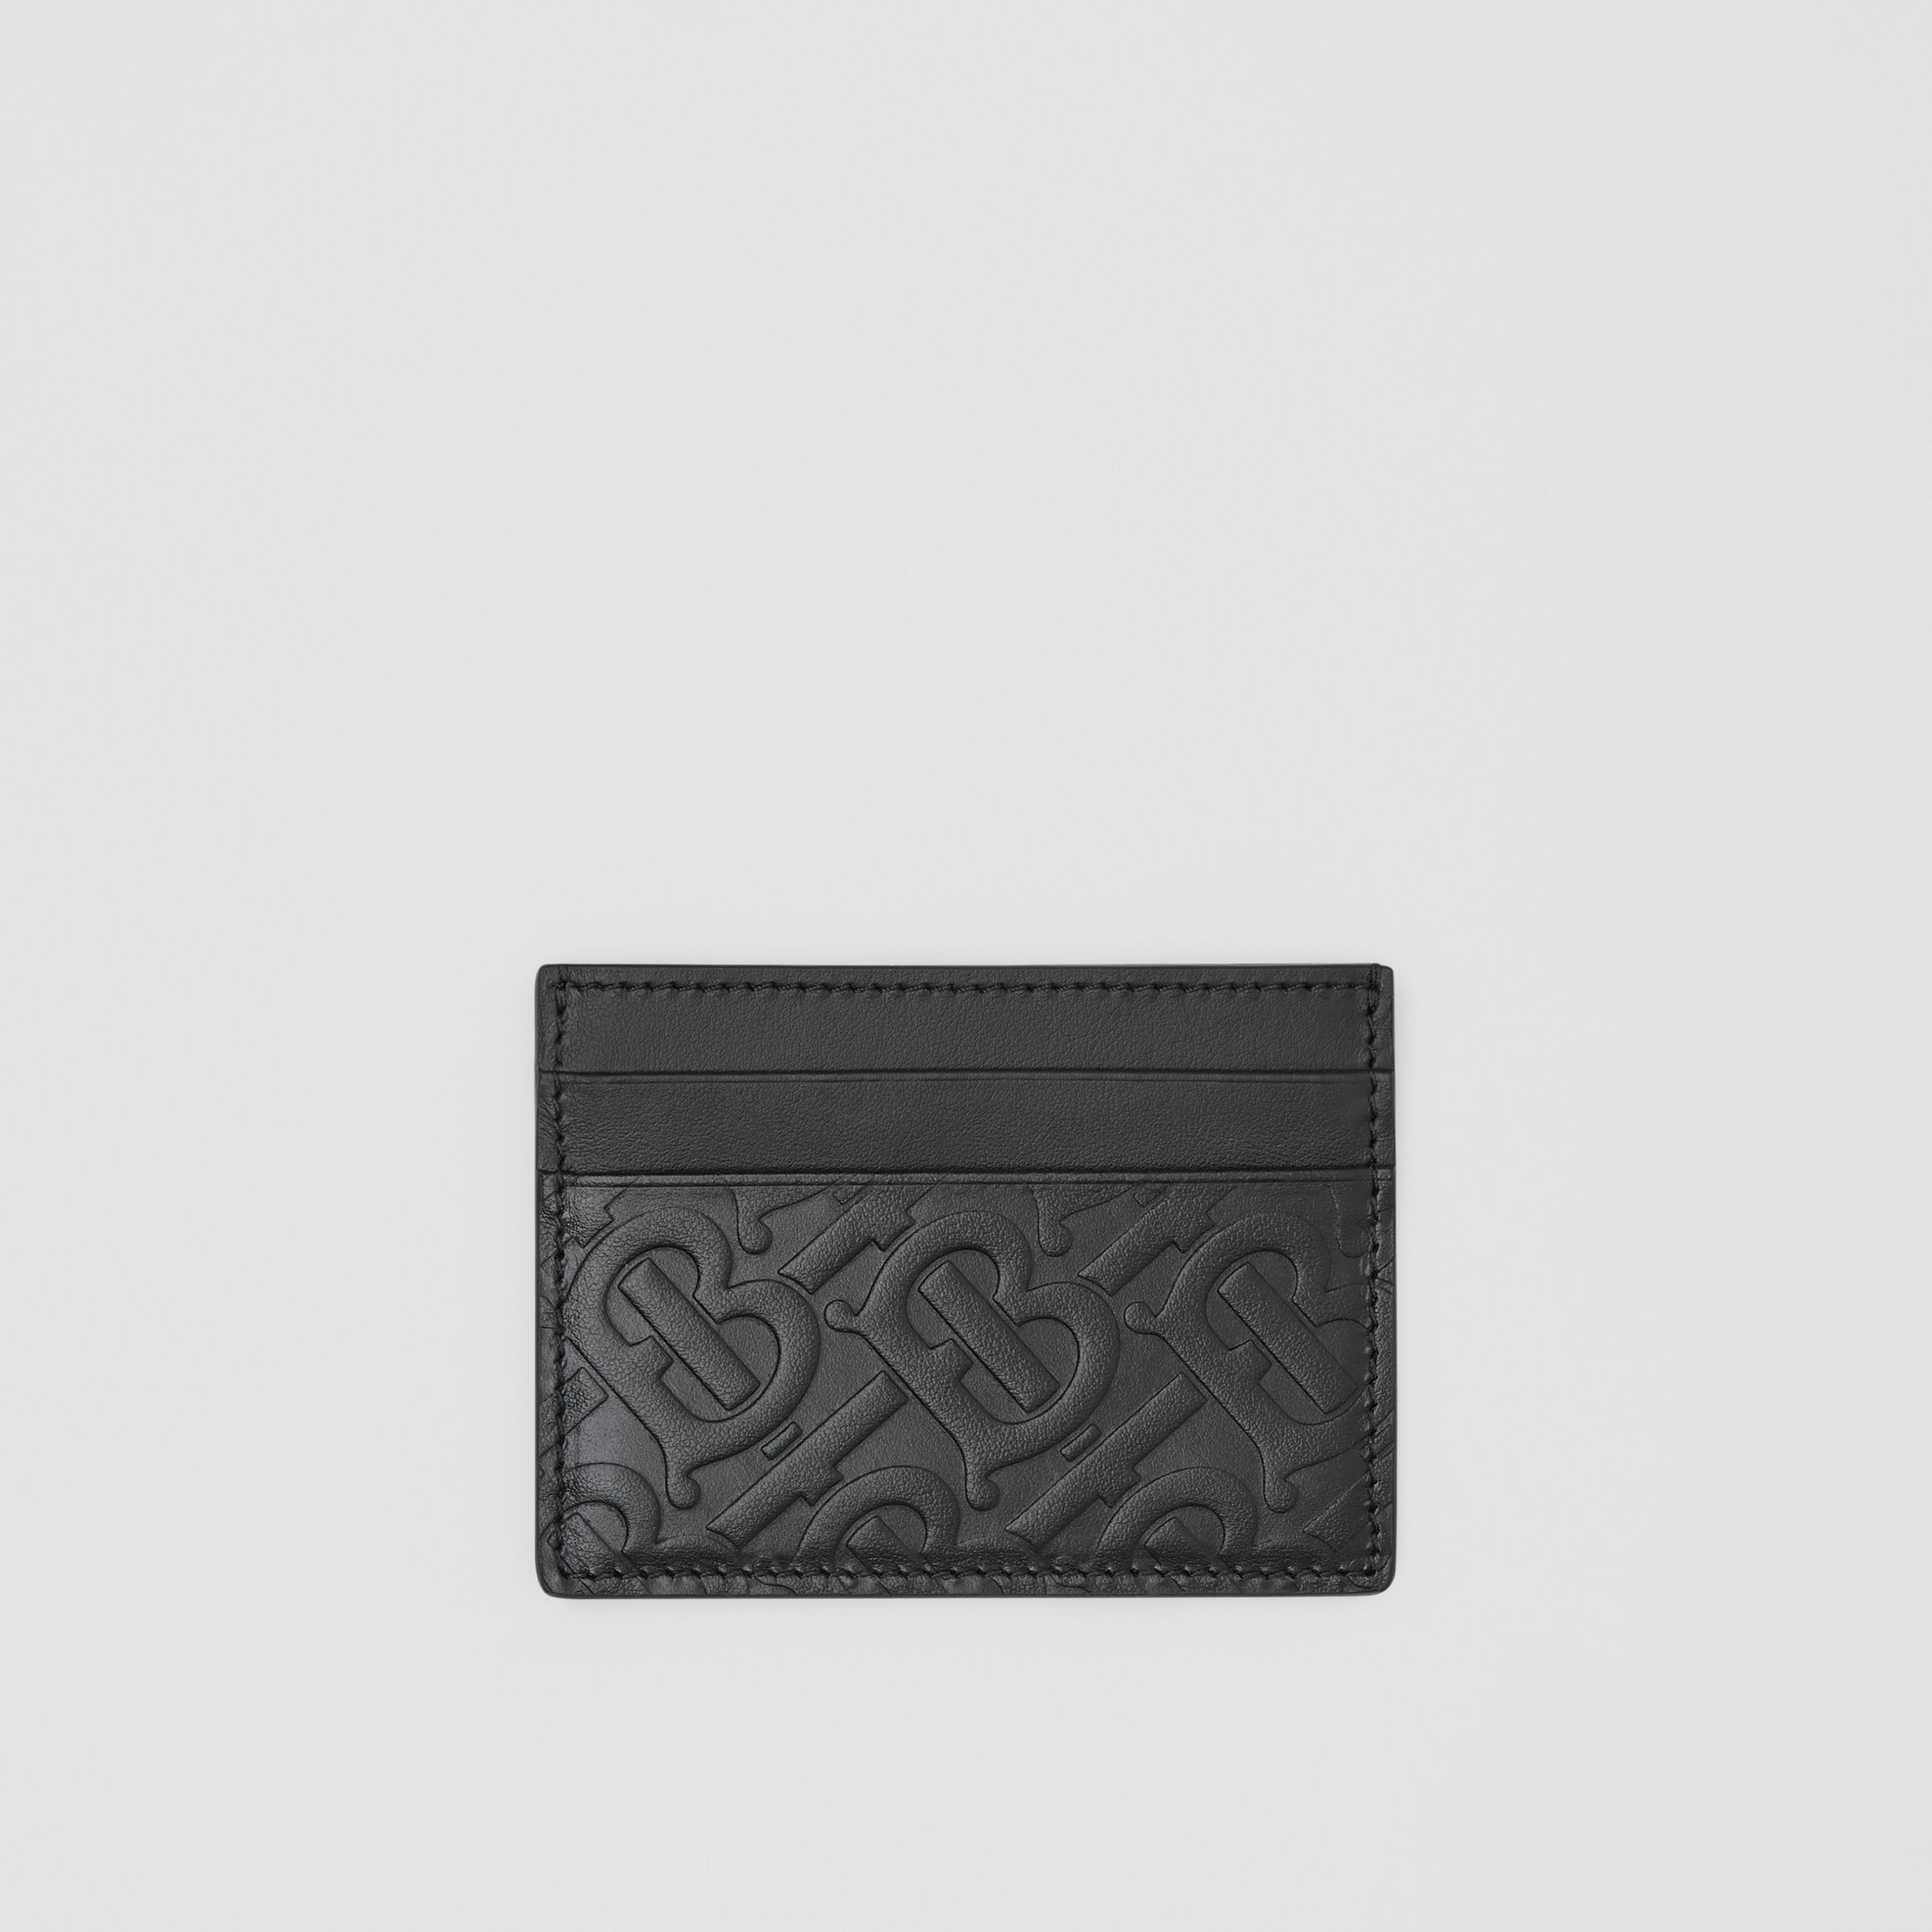 Monogram Leather Card Case in Black | Burberry Canada - 1